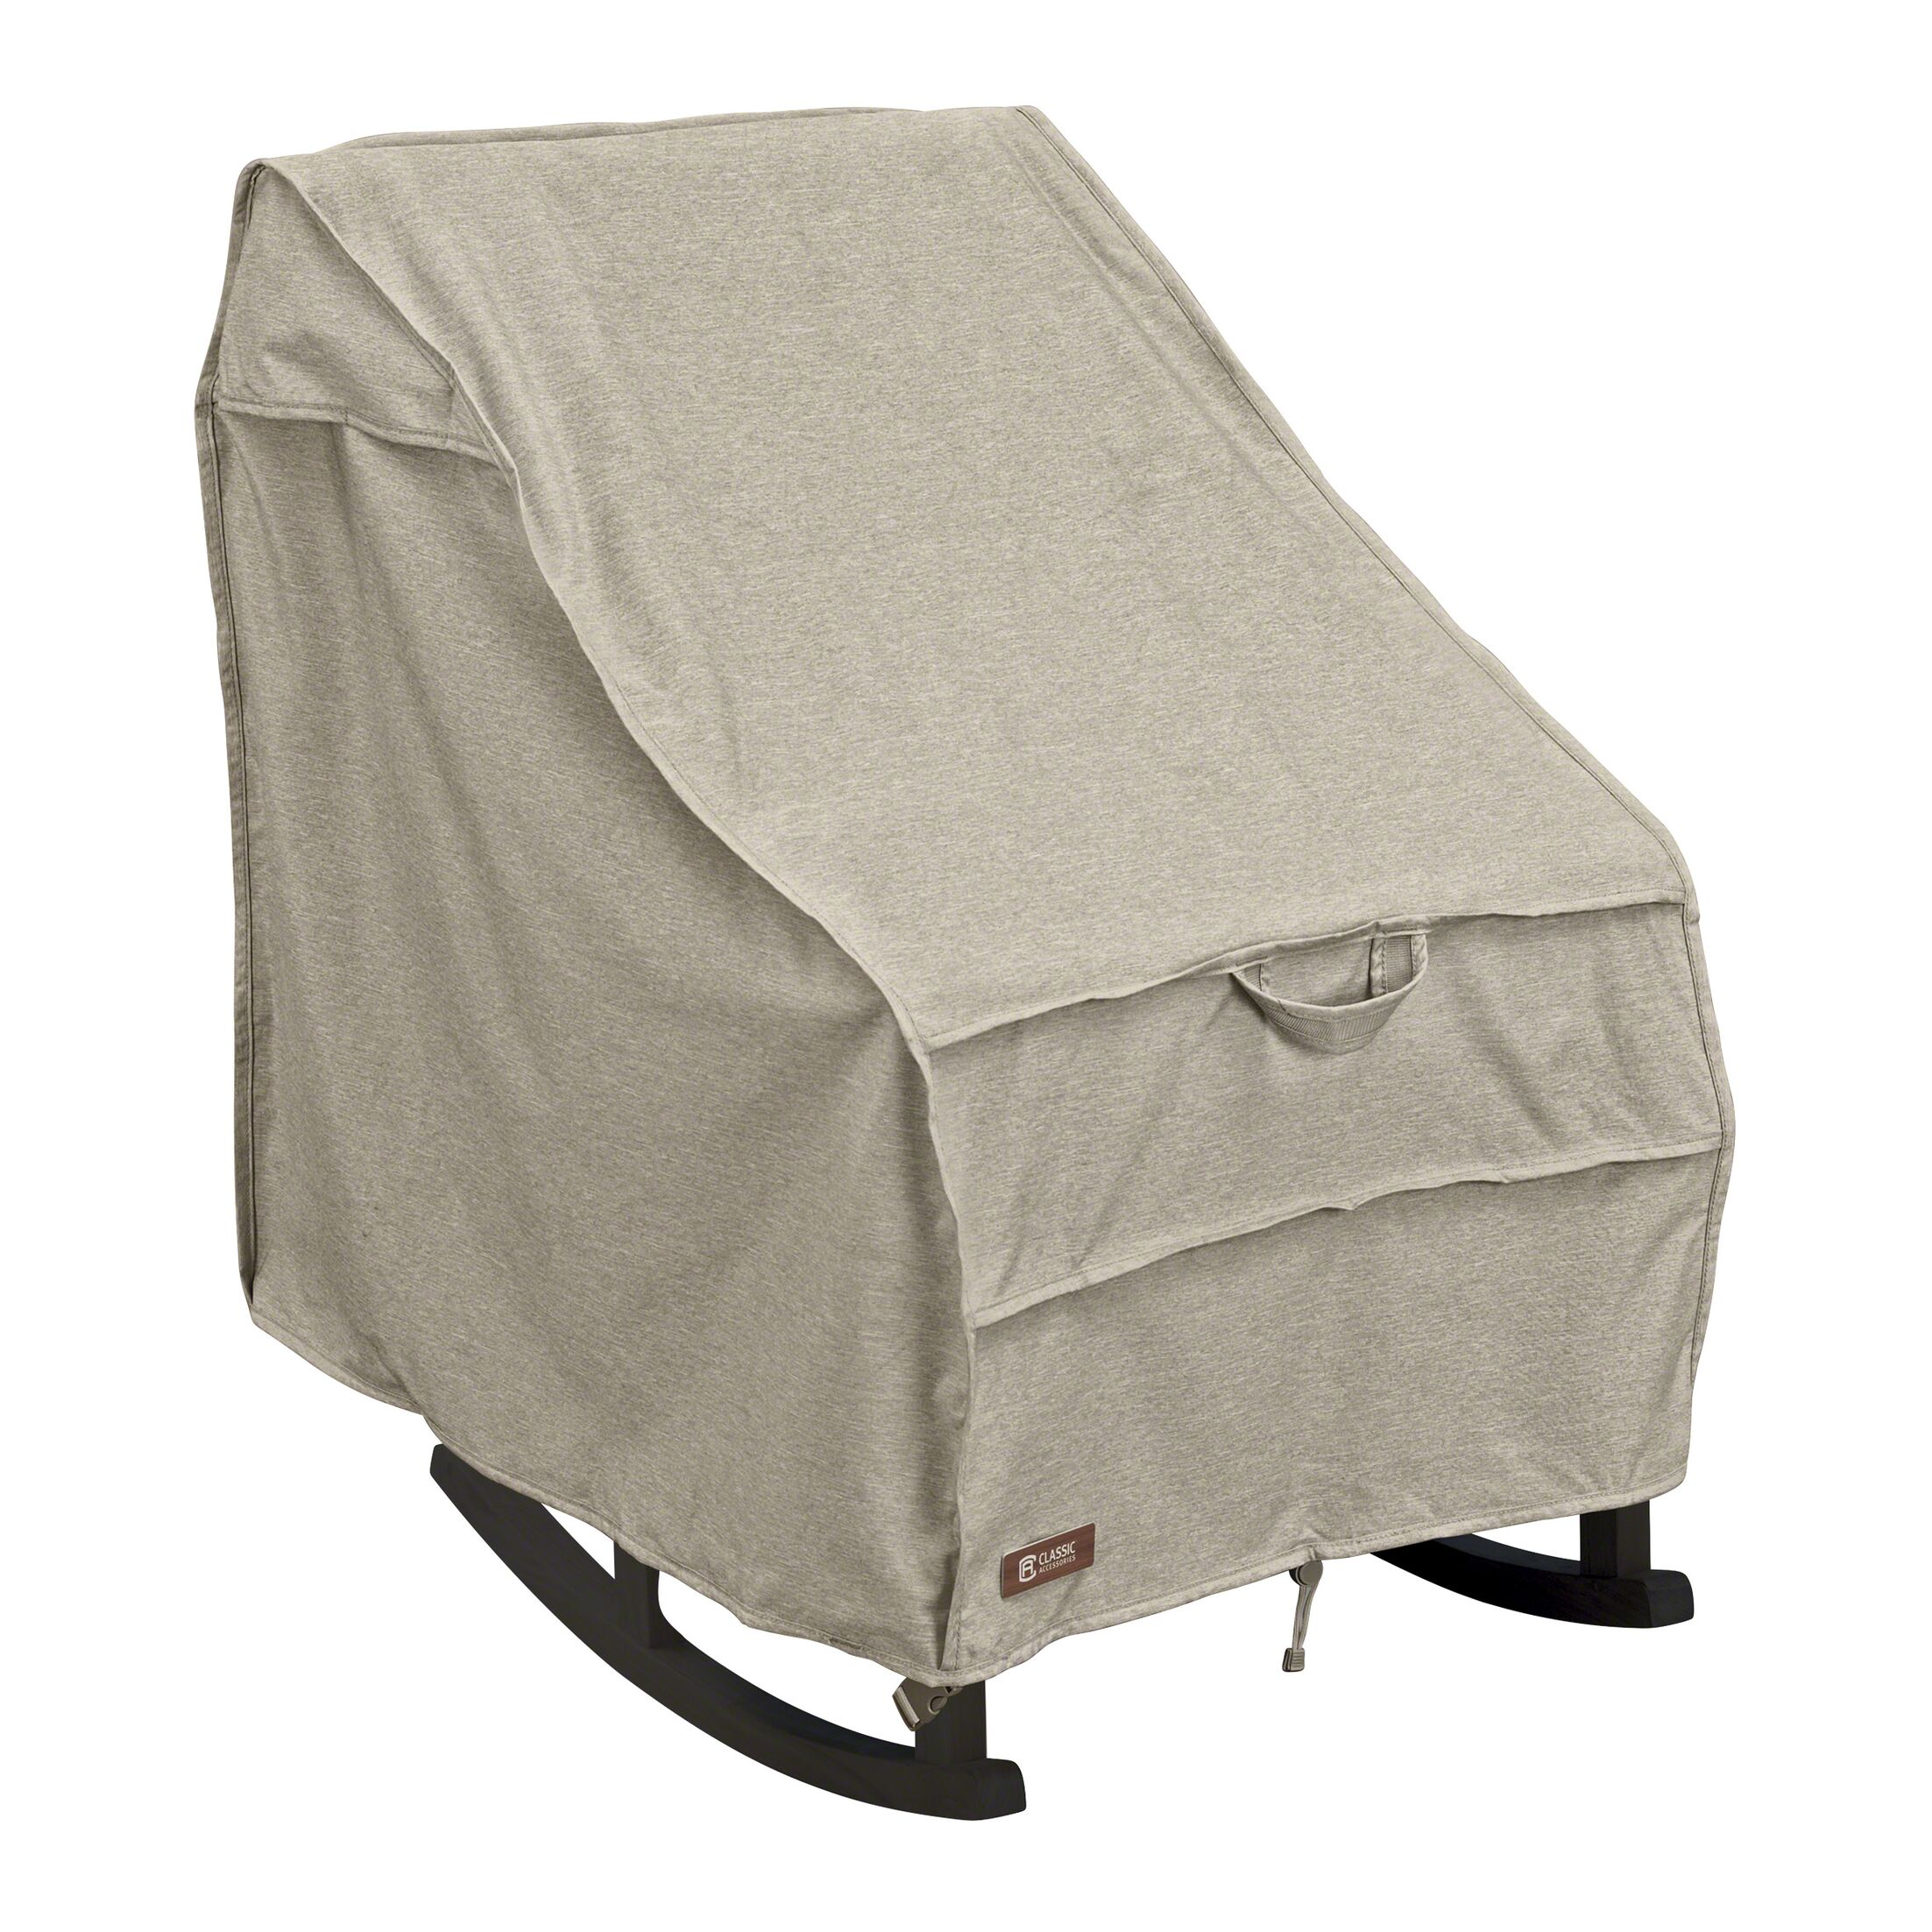 Searcy Water Resistant Patio Chair Cover